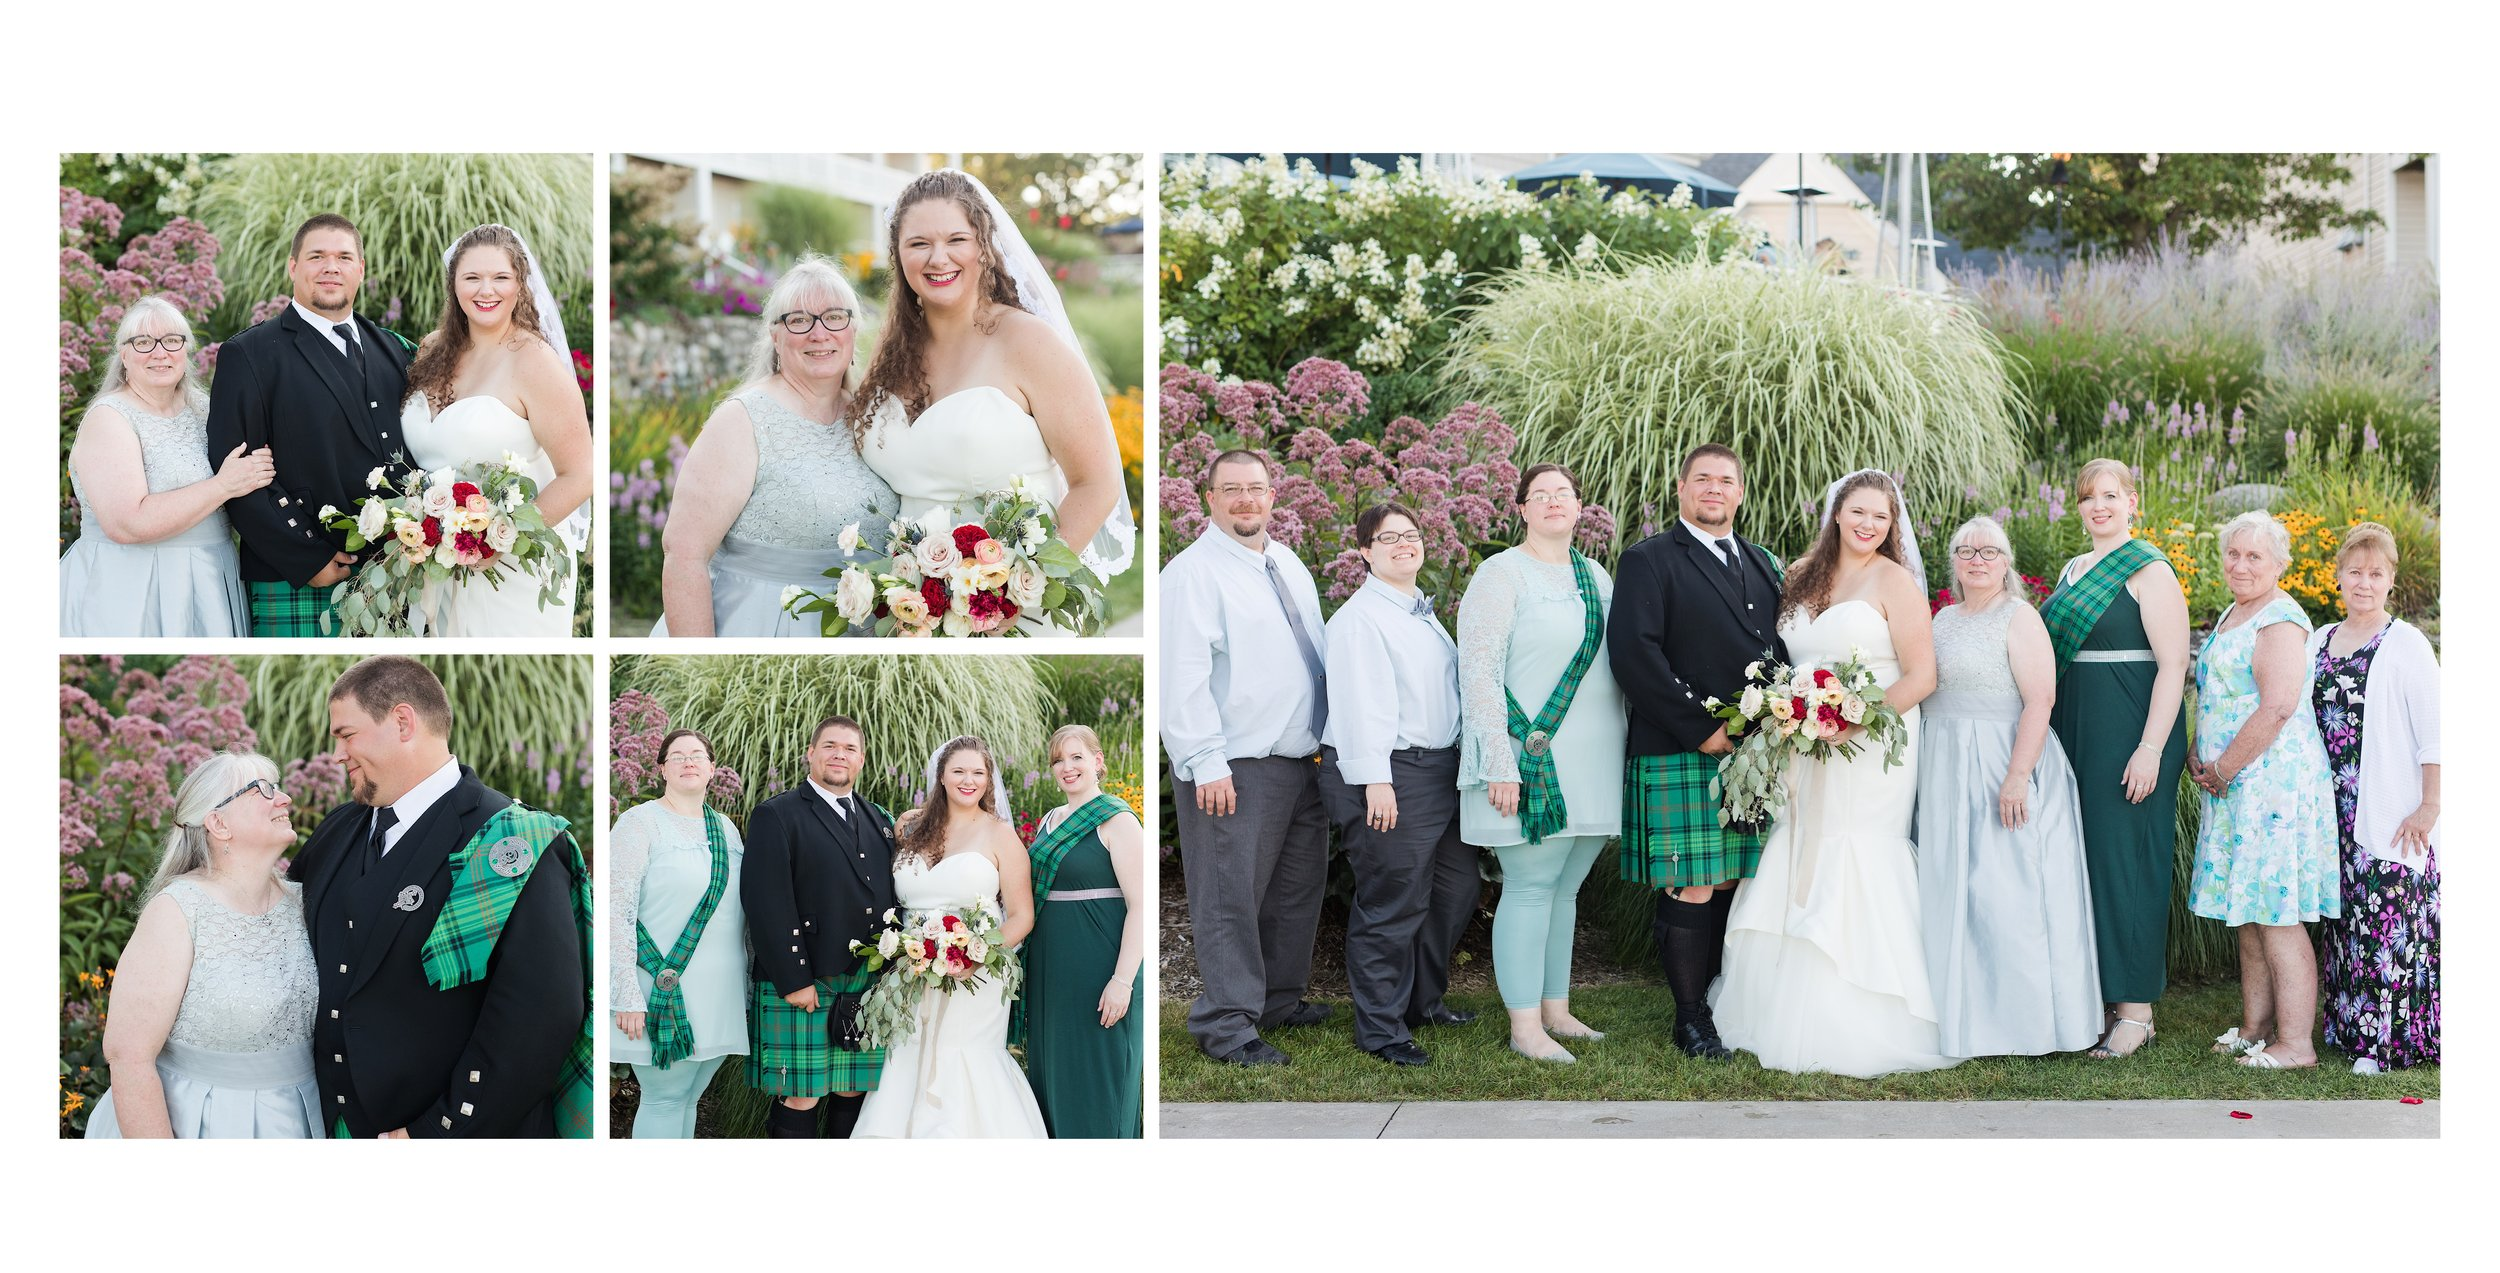 Our_Wedding_Album_12x12_-_30_pages_27.jpg